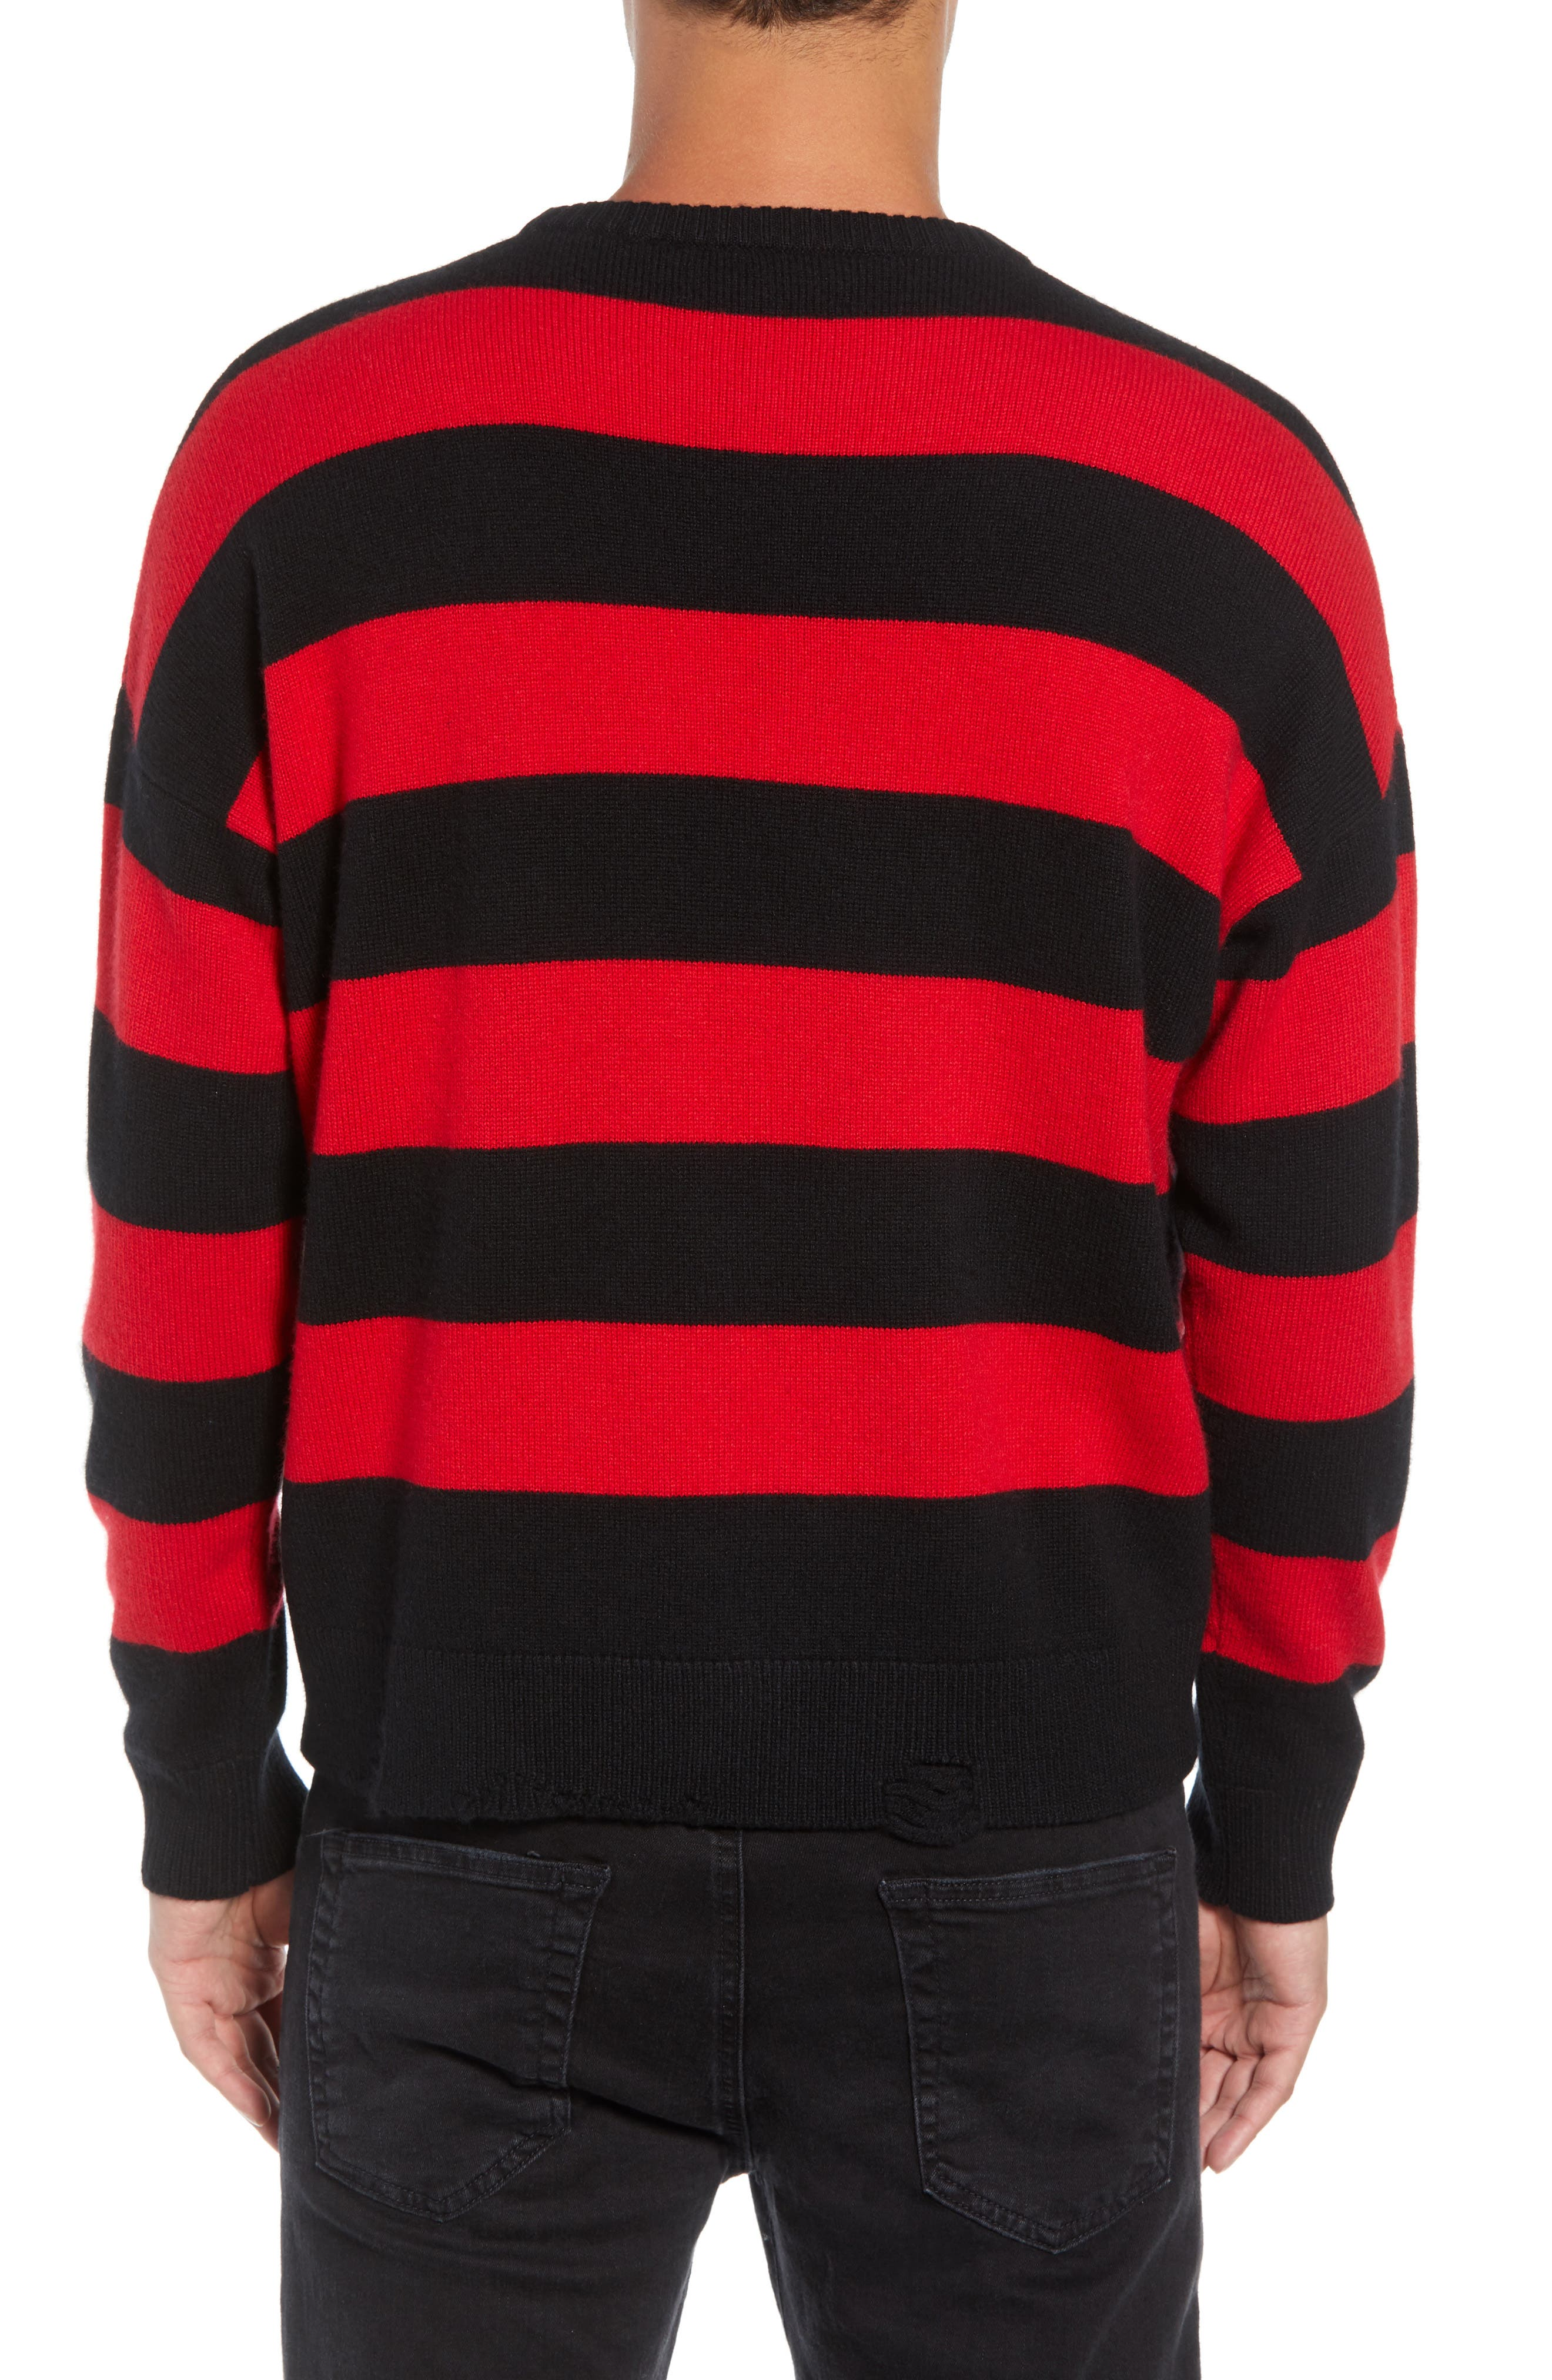 Shredded Stripe Sweater,                             Alternate thumbnail 2, color,                             RED/ BLACK